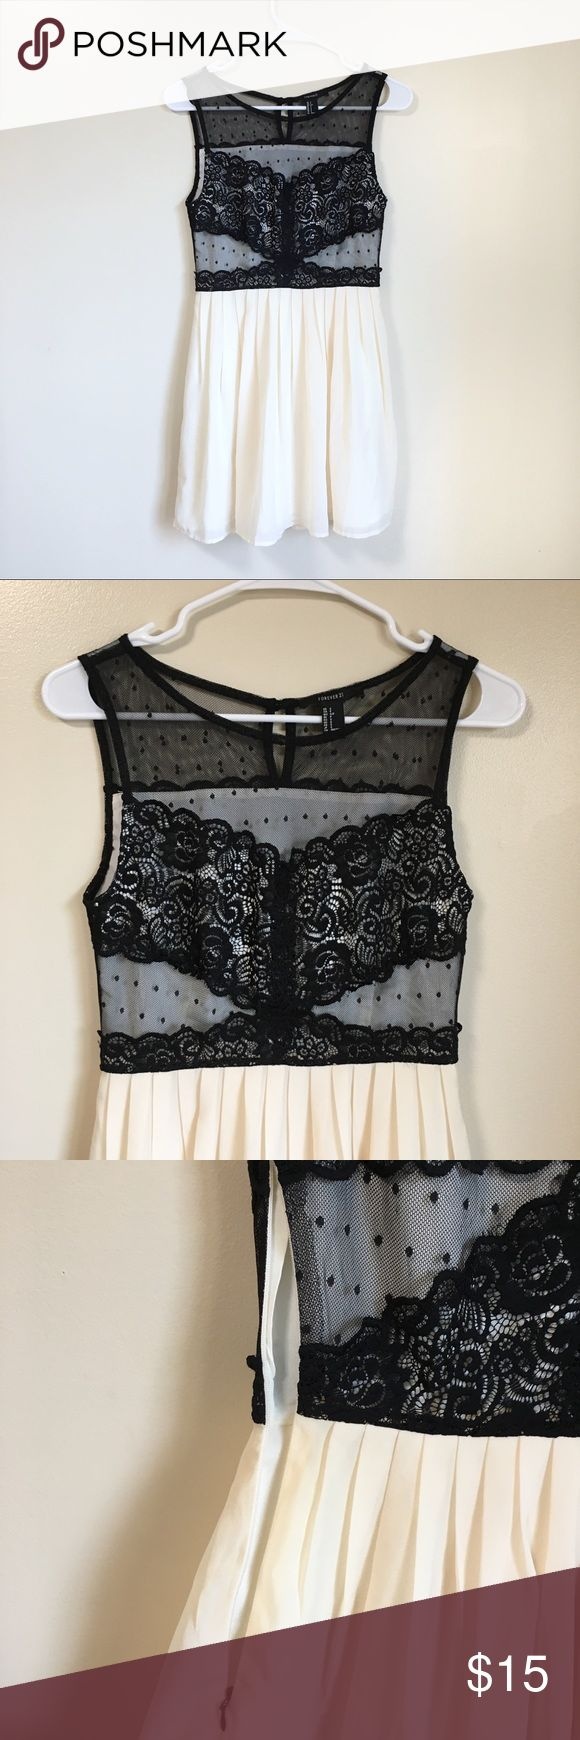 Forever 21 Pleated Lace Dress Semi formal dress with pleated skirt and lace top. Only worn twice with no flaws. Had a zipper on the side. Lace has a cream lining. Only sheer where the top polka dots are. Forever 21 Dresses Mini